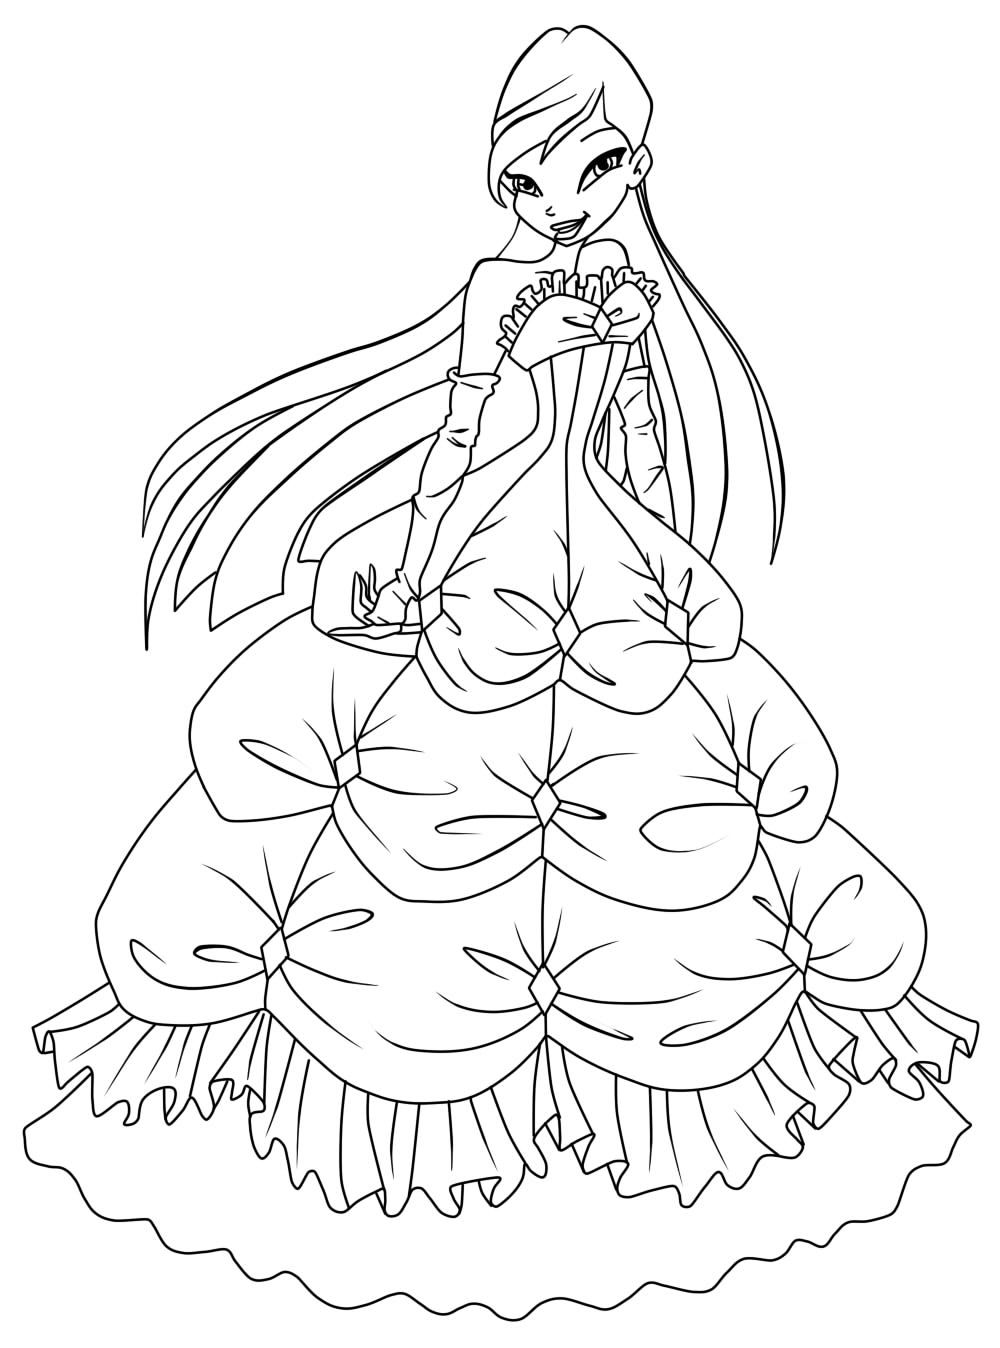 Winx Club Musa Coloring Pages